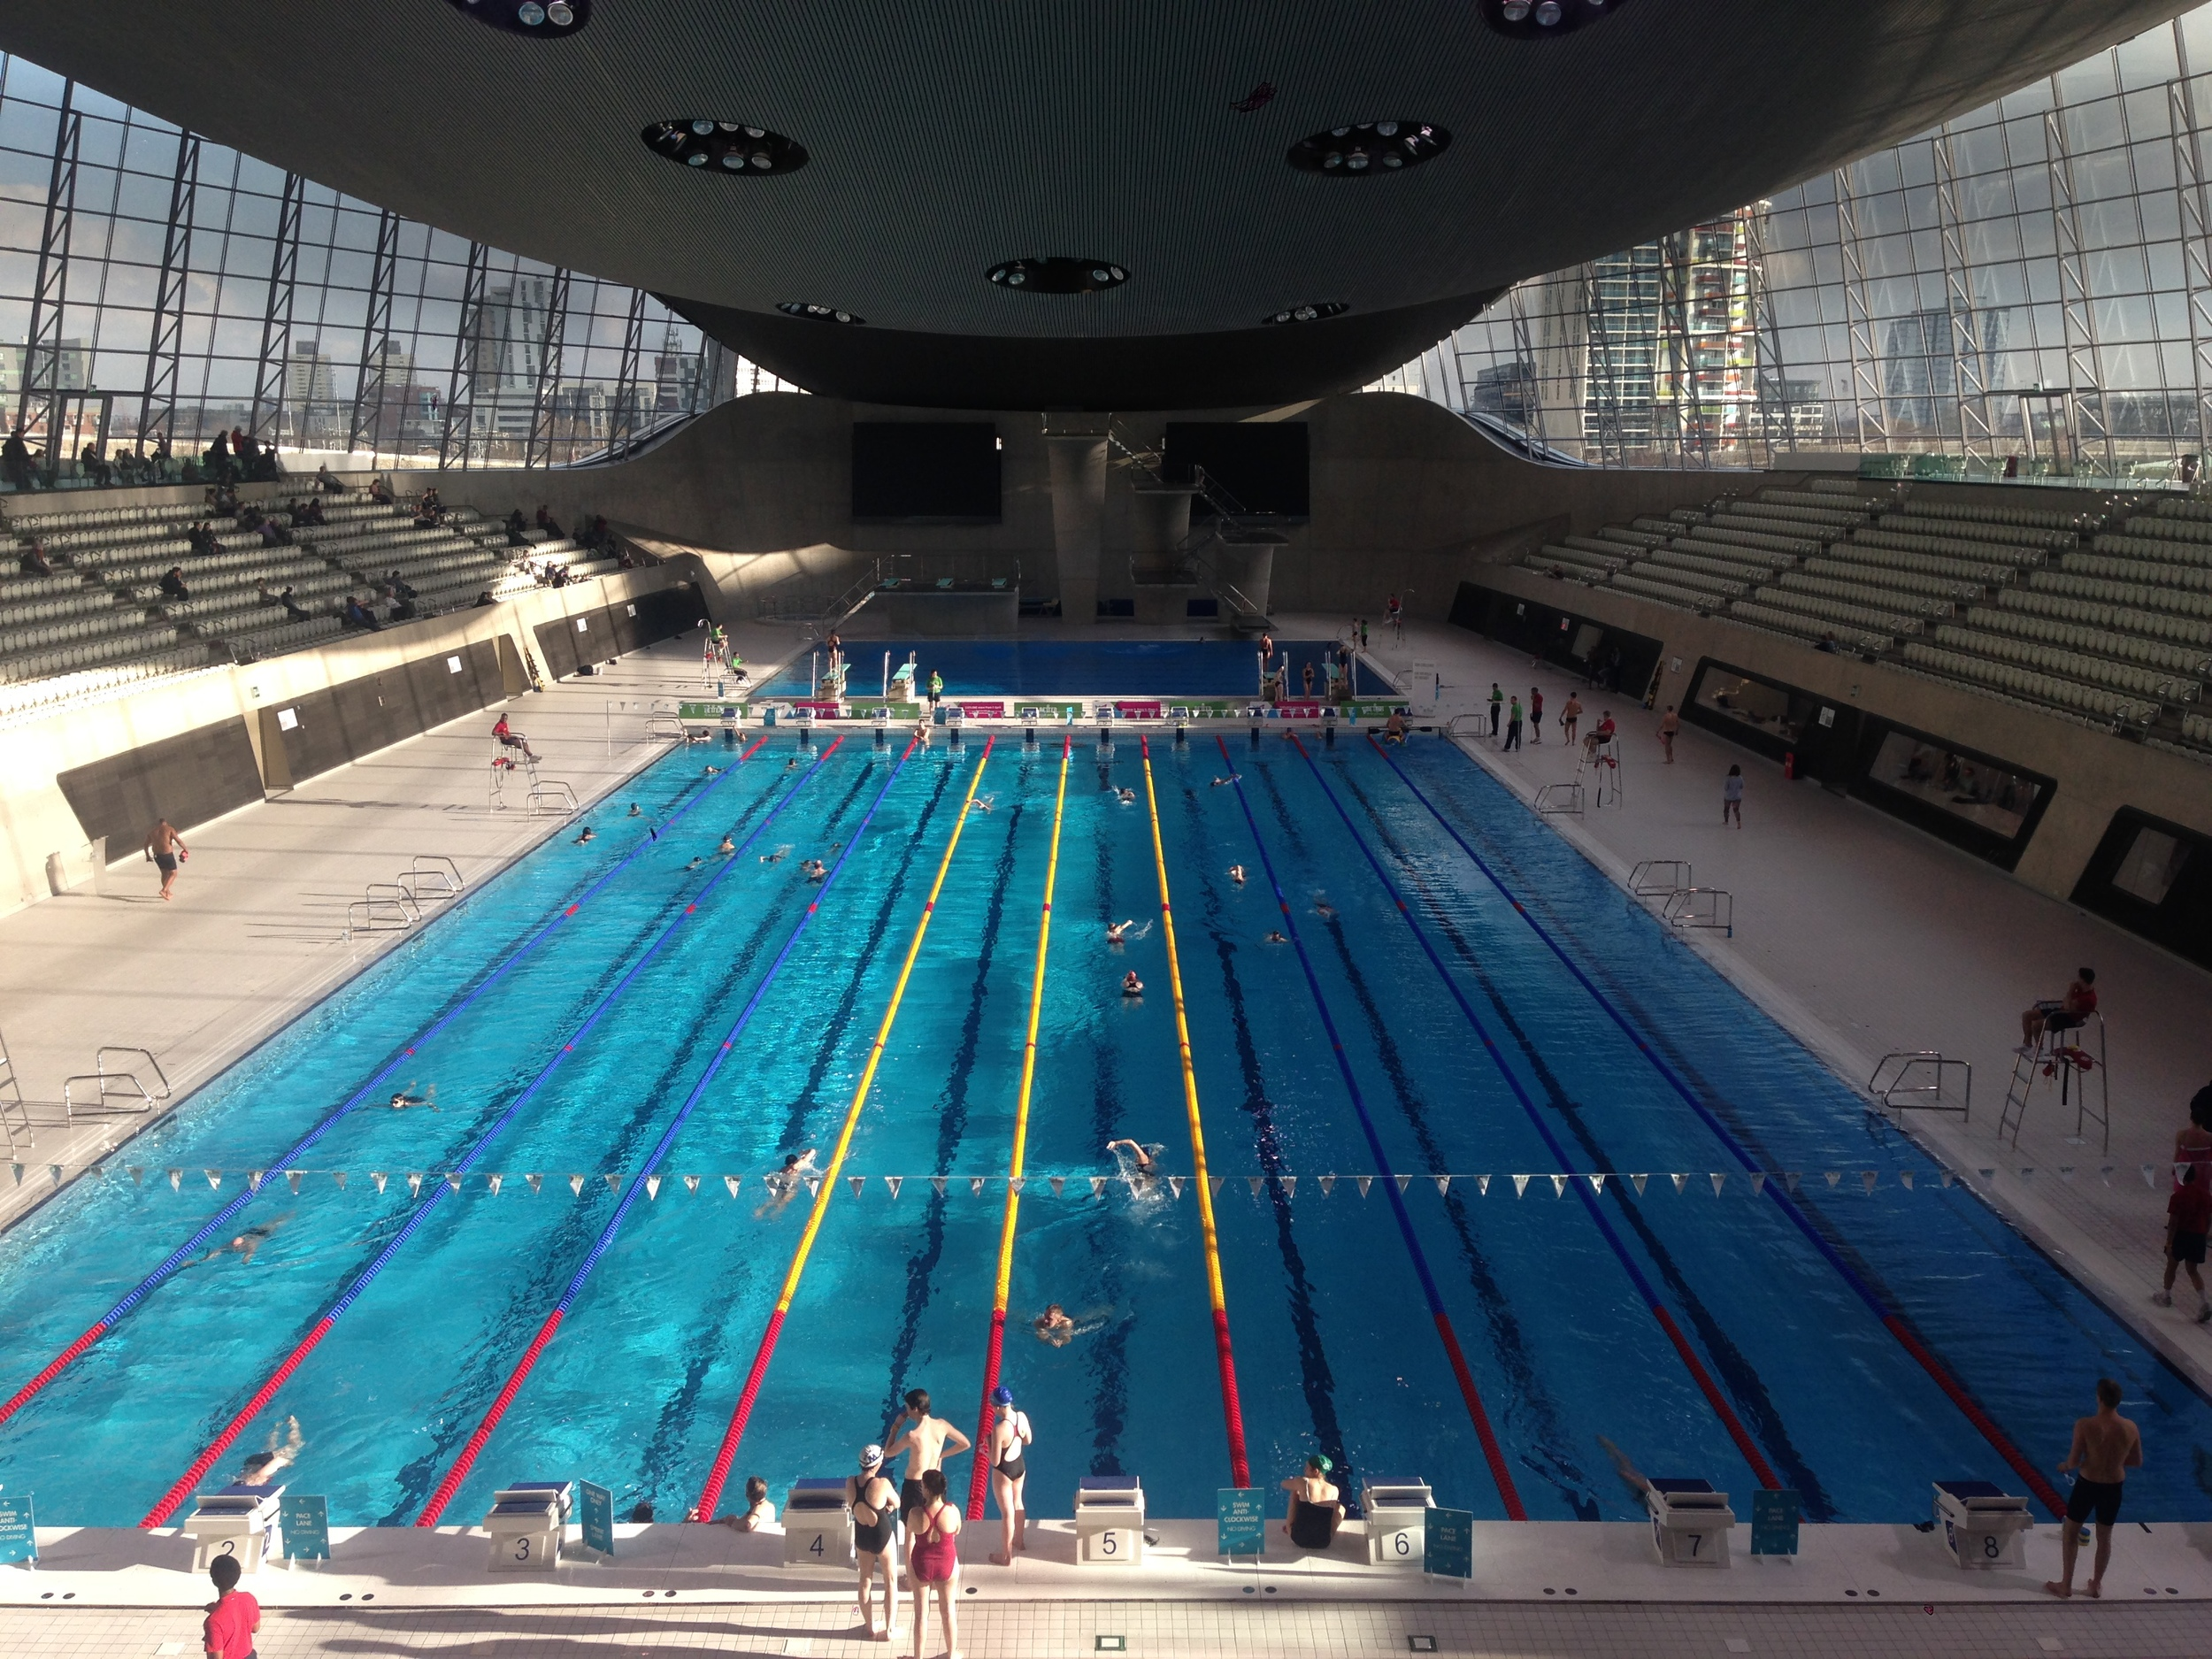 Image courtesy of GLL. Pool now open without the extended seating!